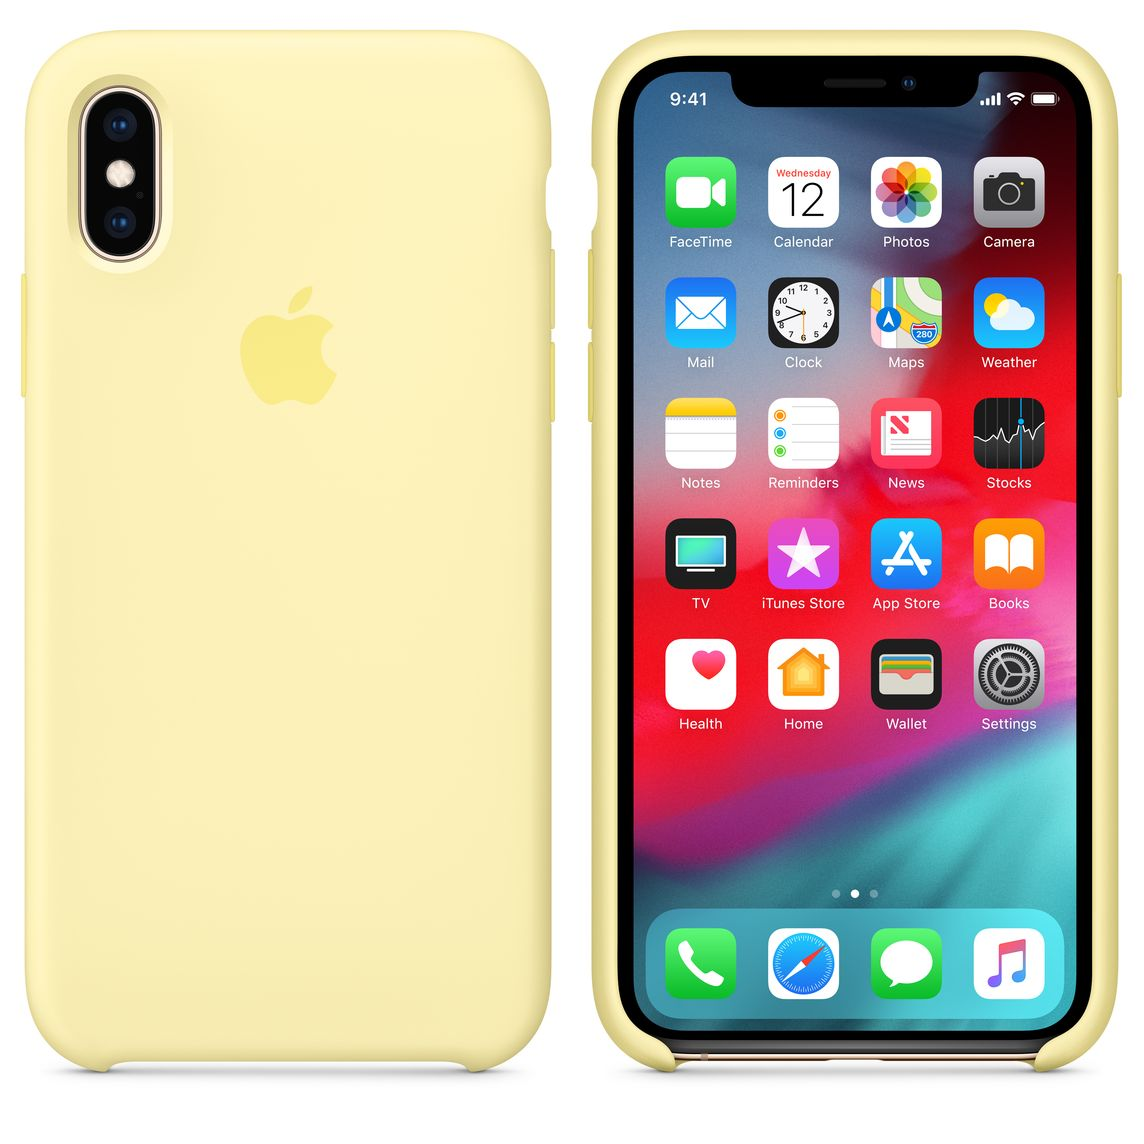 reputable site e7c35 e8058 iPhone XS Silicone Case - Mellow Yellow